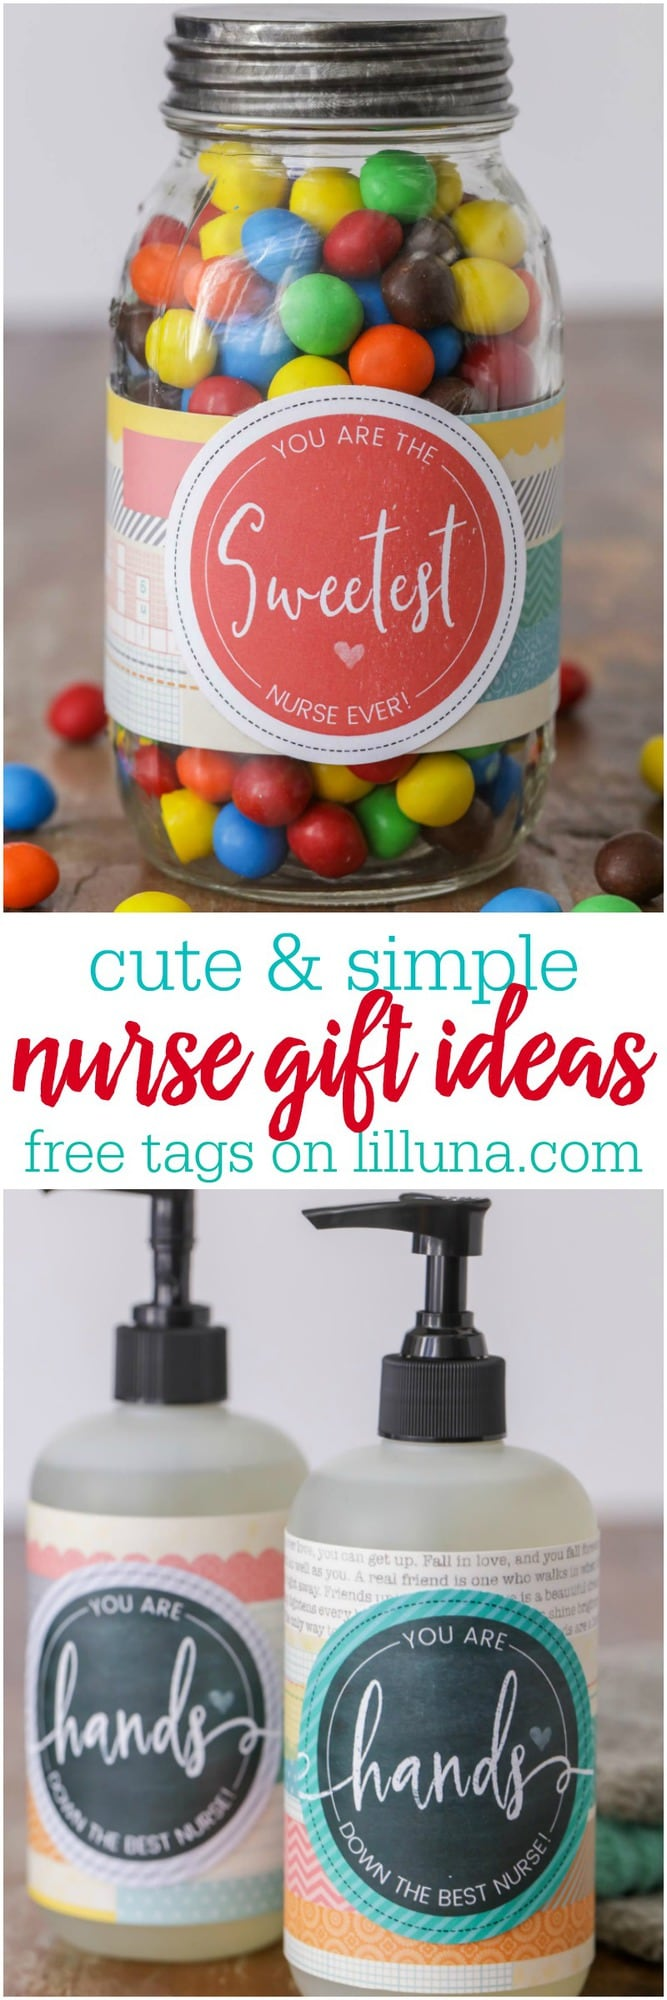 Gifts for Nurses - cute and simple ideas with free printable tags to attach to them!